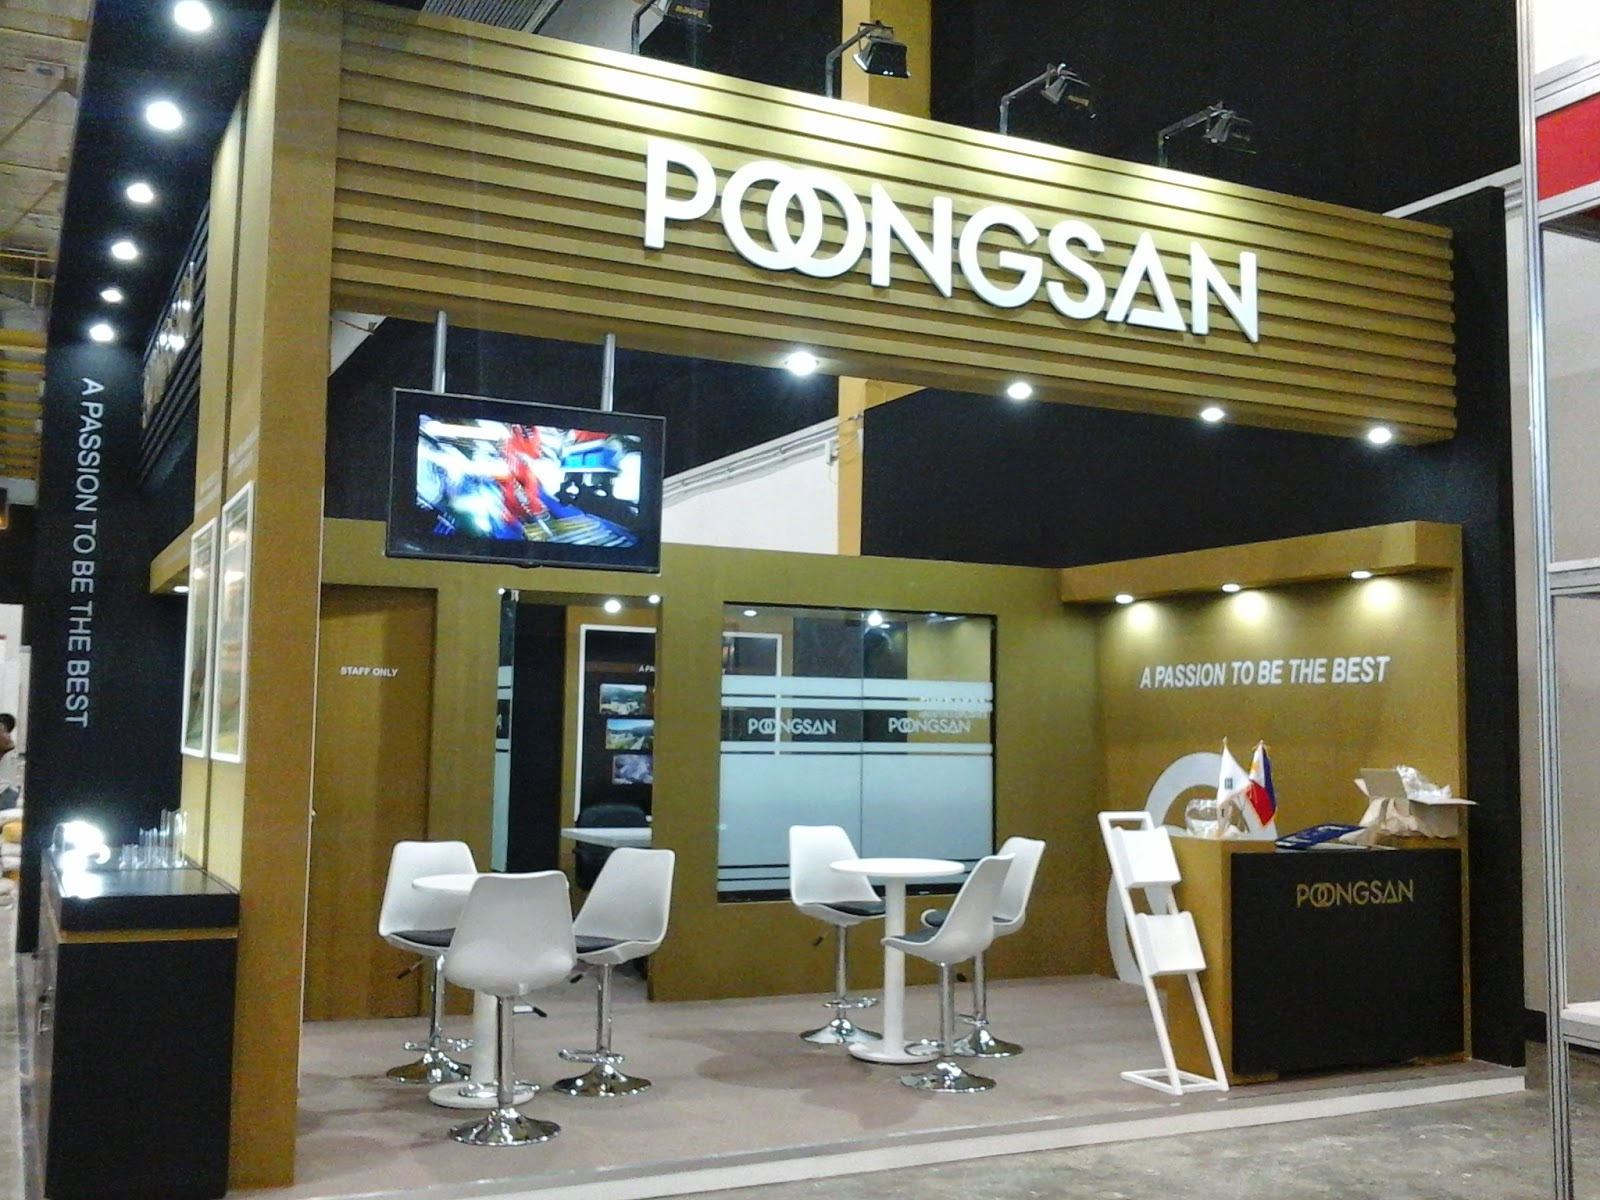 Poongsan ADAS 2014 Trade Show Booth